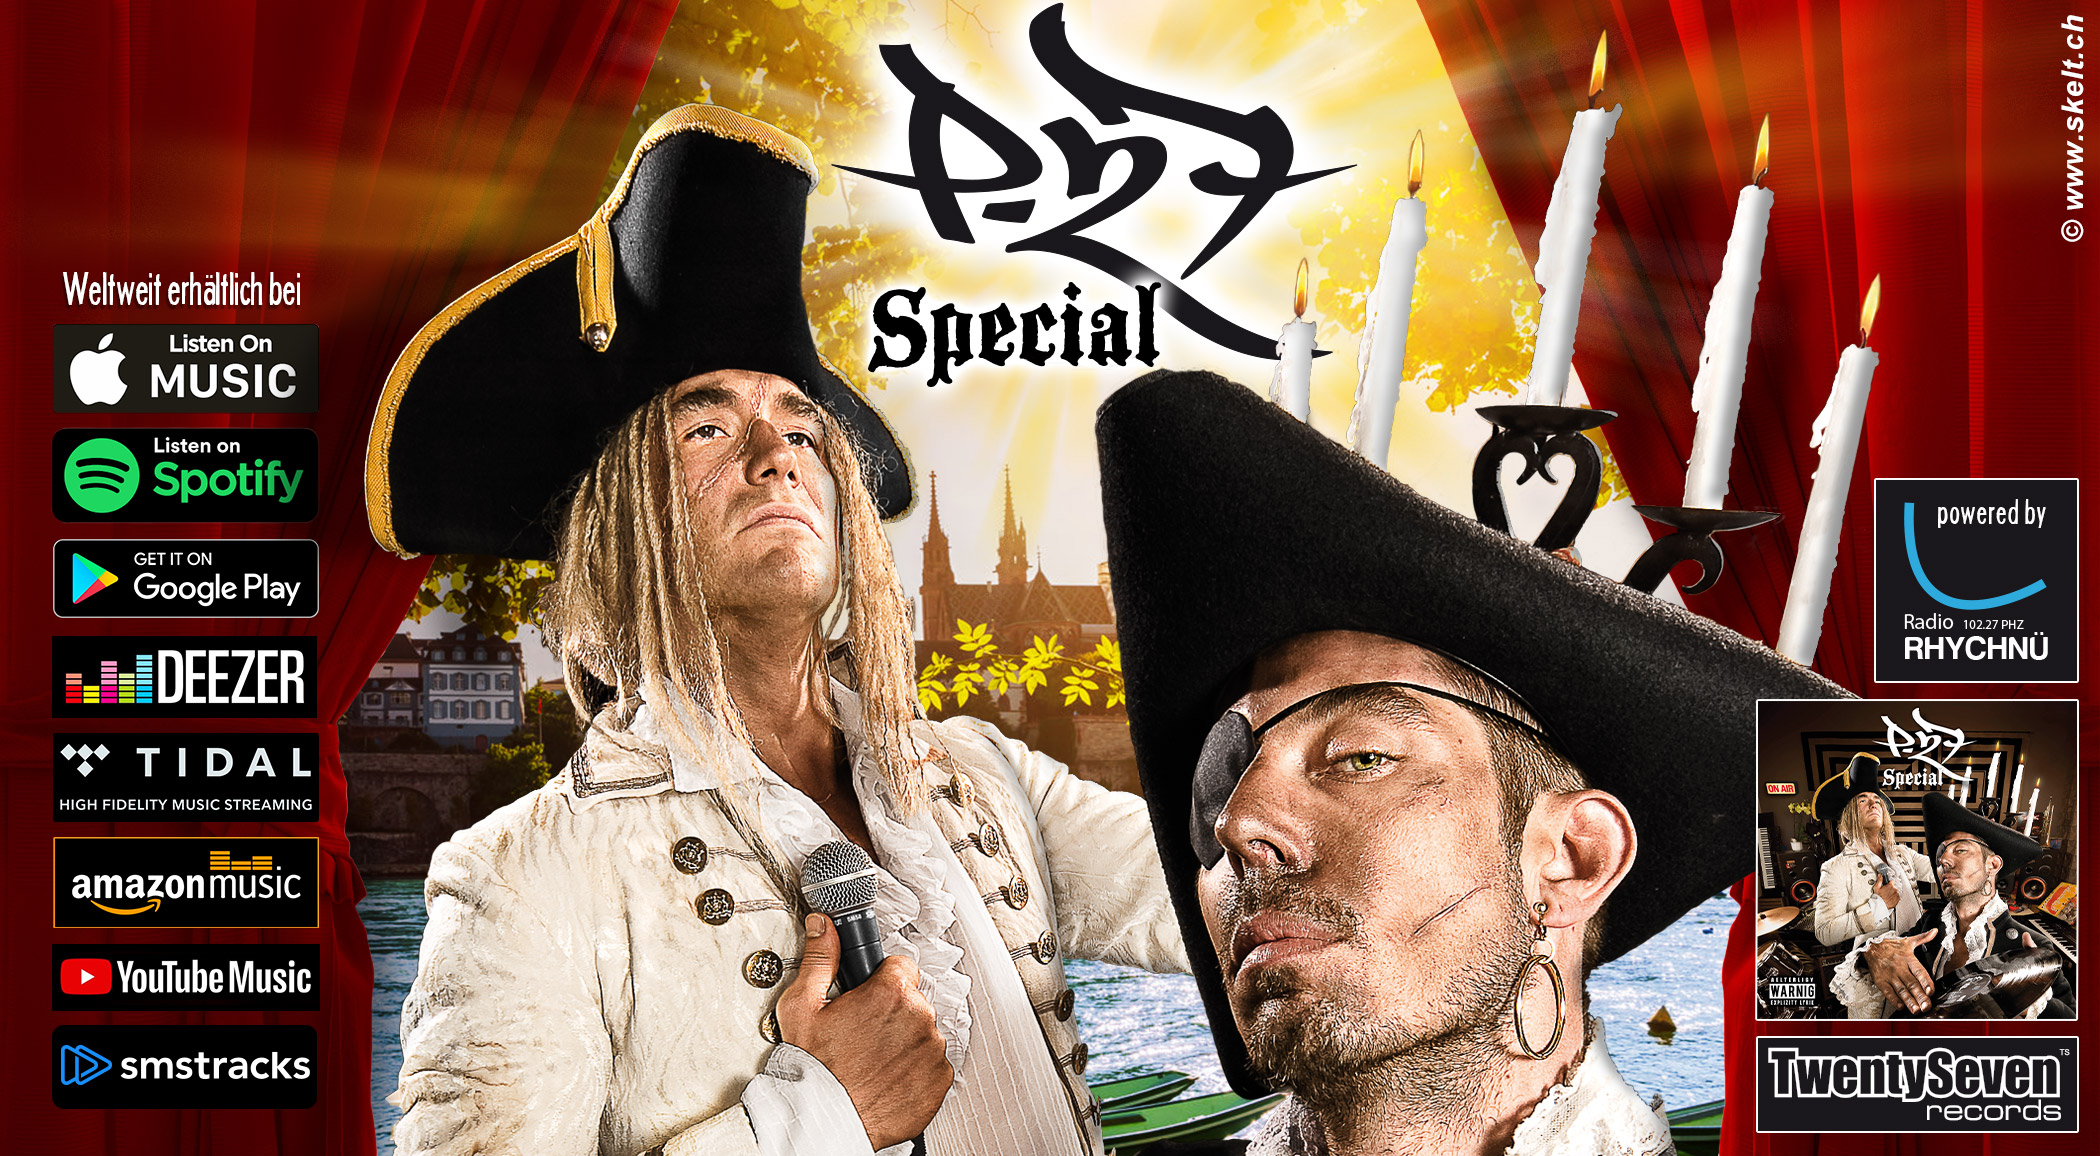 P-27 - Special (CD / 2010)